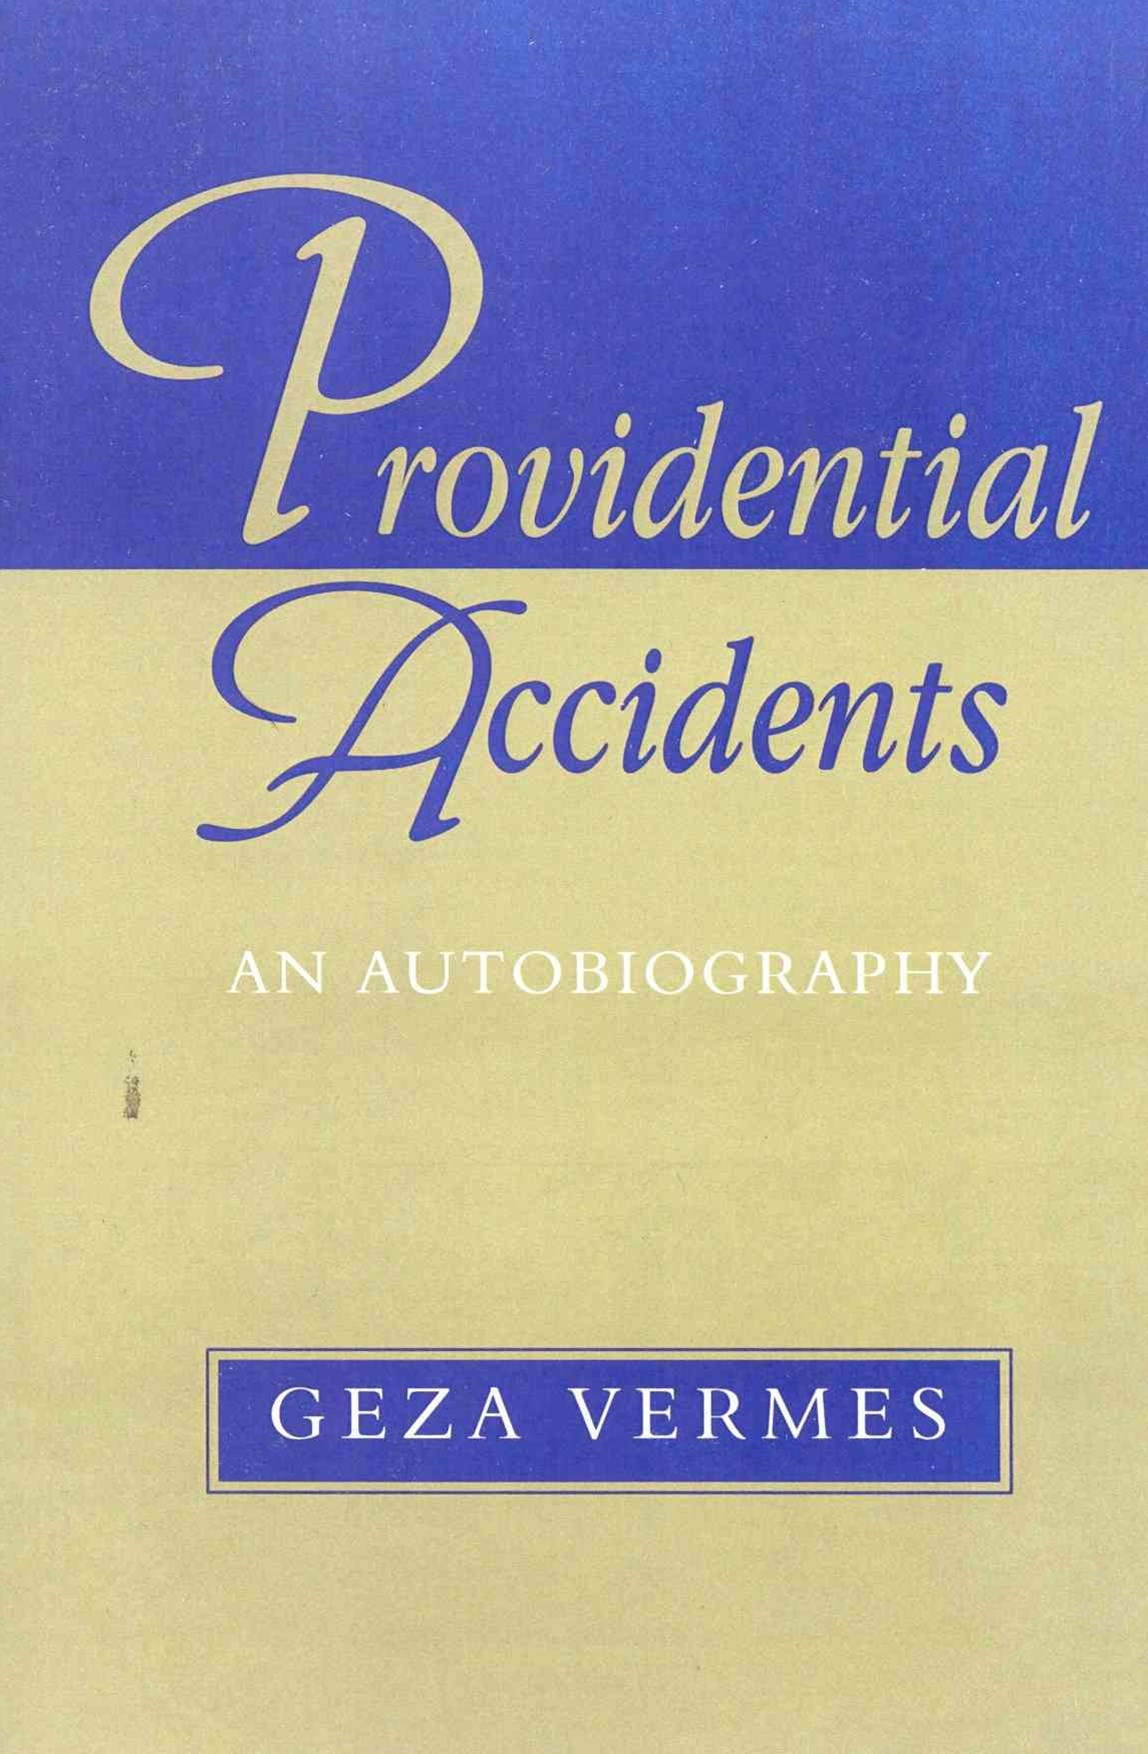 Providential Accidents